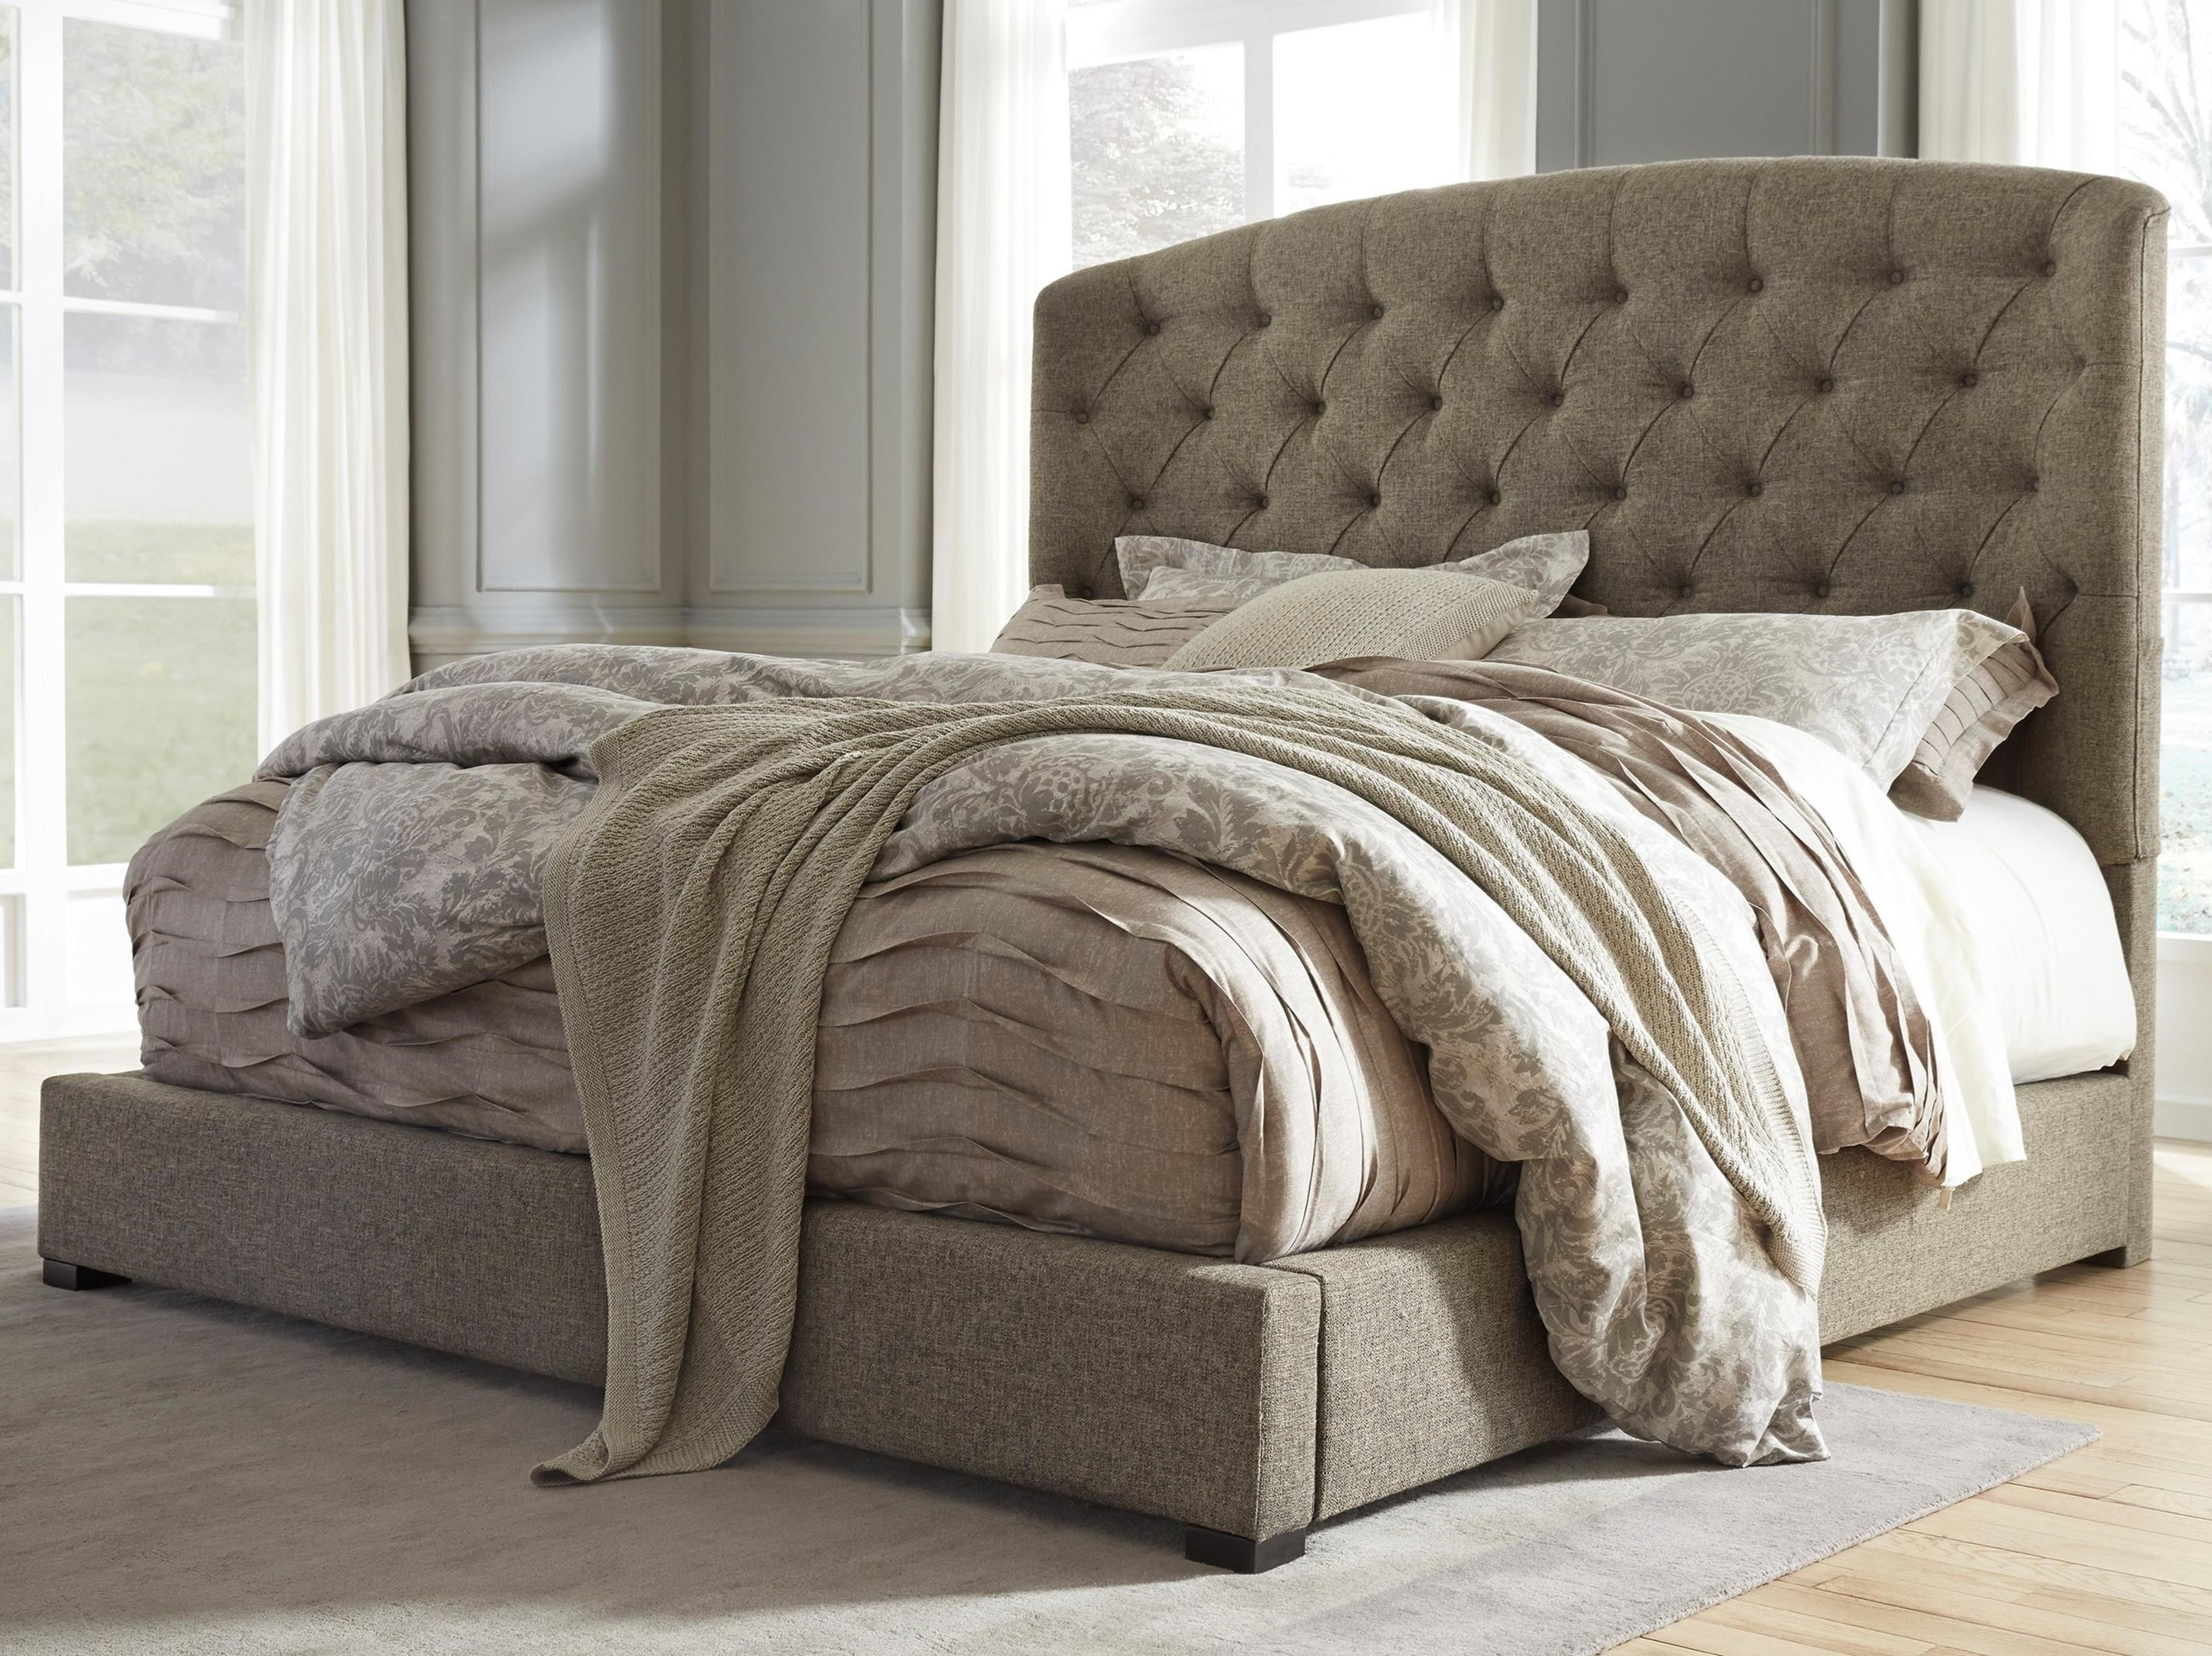 Signature Design by Ashley Gerlane Queen Upholstered Bed with Arched